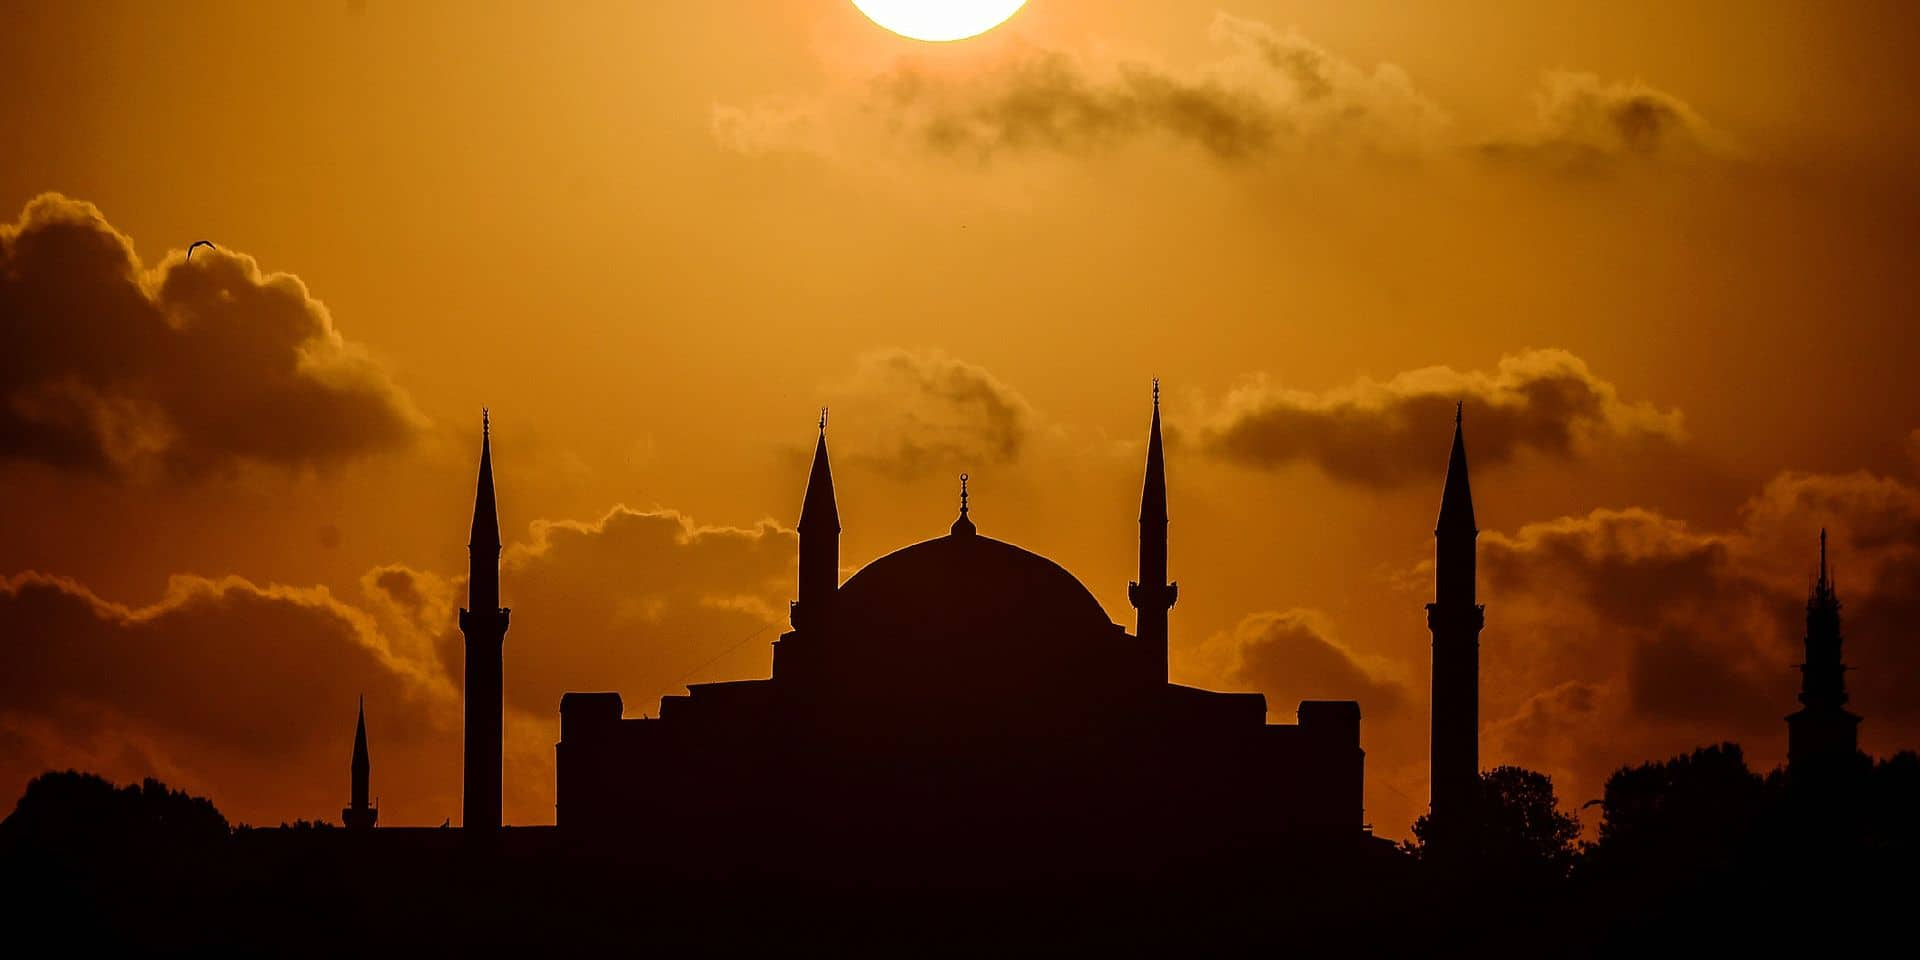 A picture taken at sunset on August 17, 2017 shows a view of Sultanahmet mosque (aka the Blue mosque) in the historic Sultanahmet district of Istanbul. / AFP PHOTO / OZAN KOSE